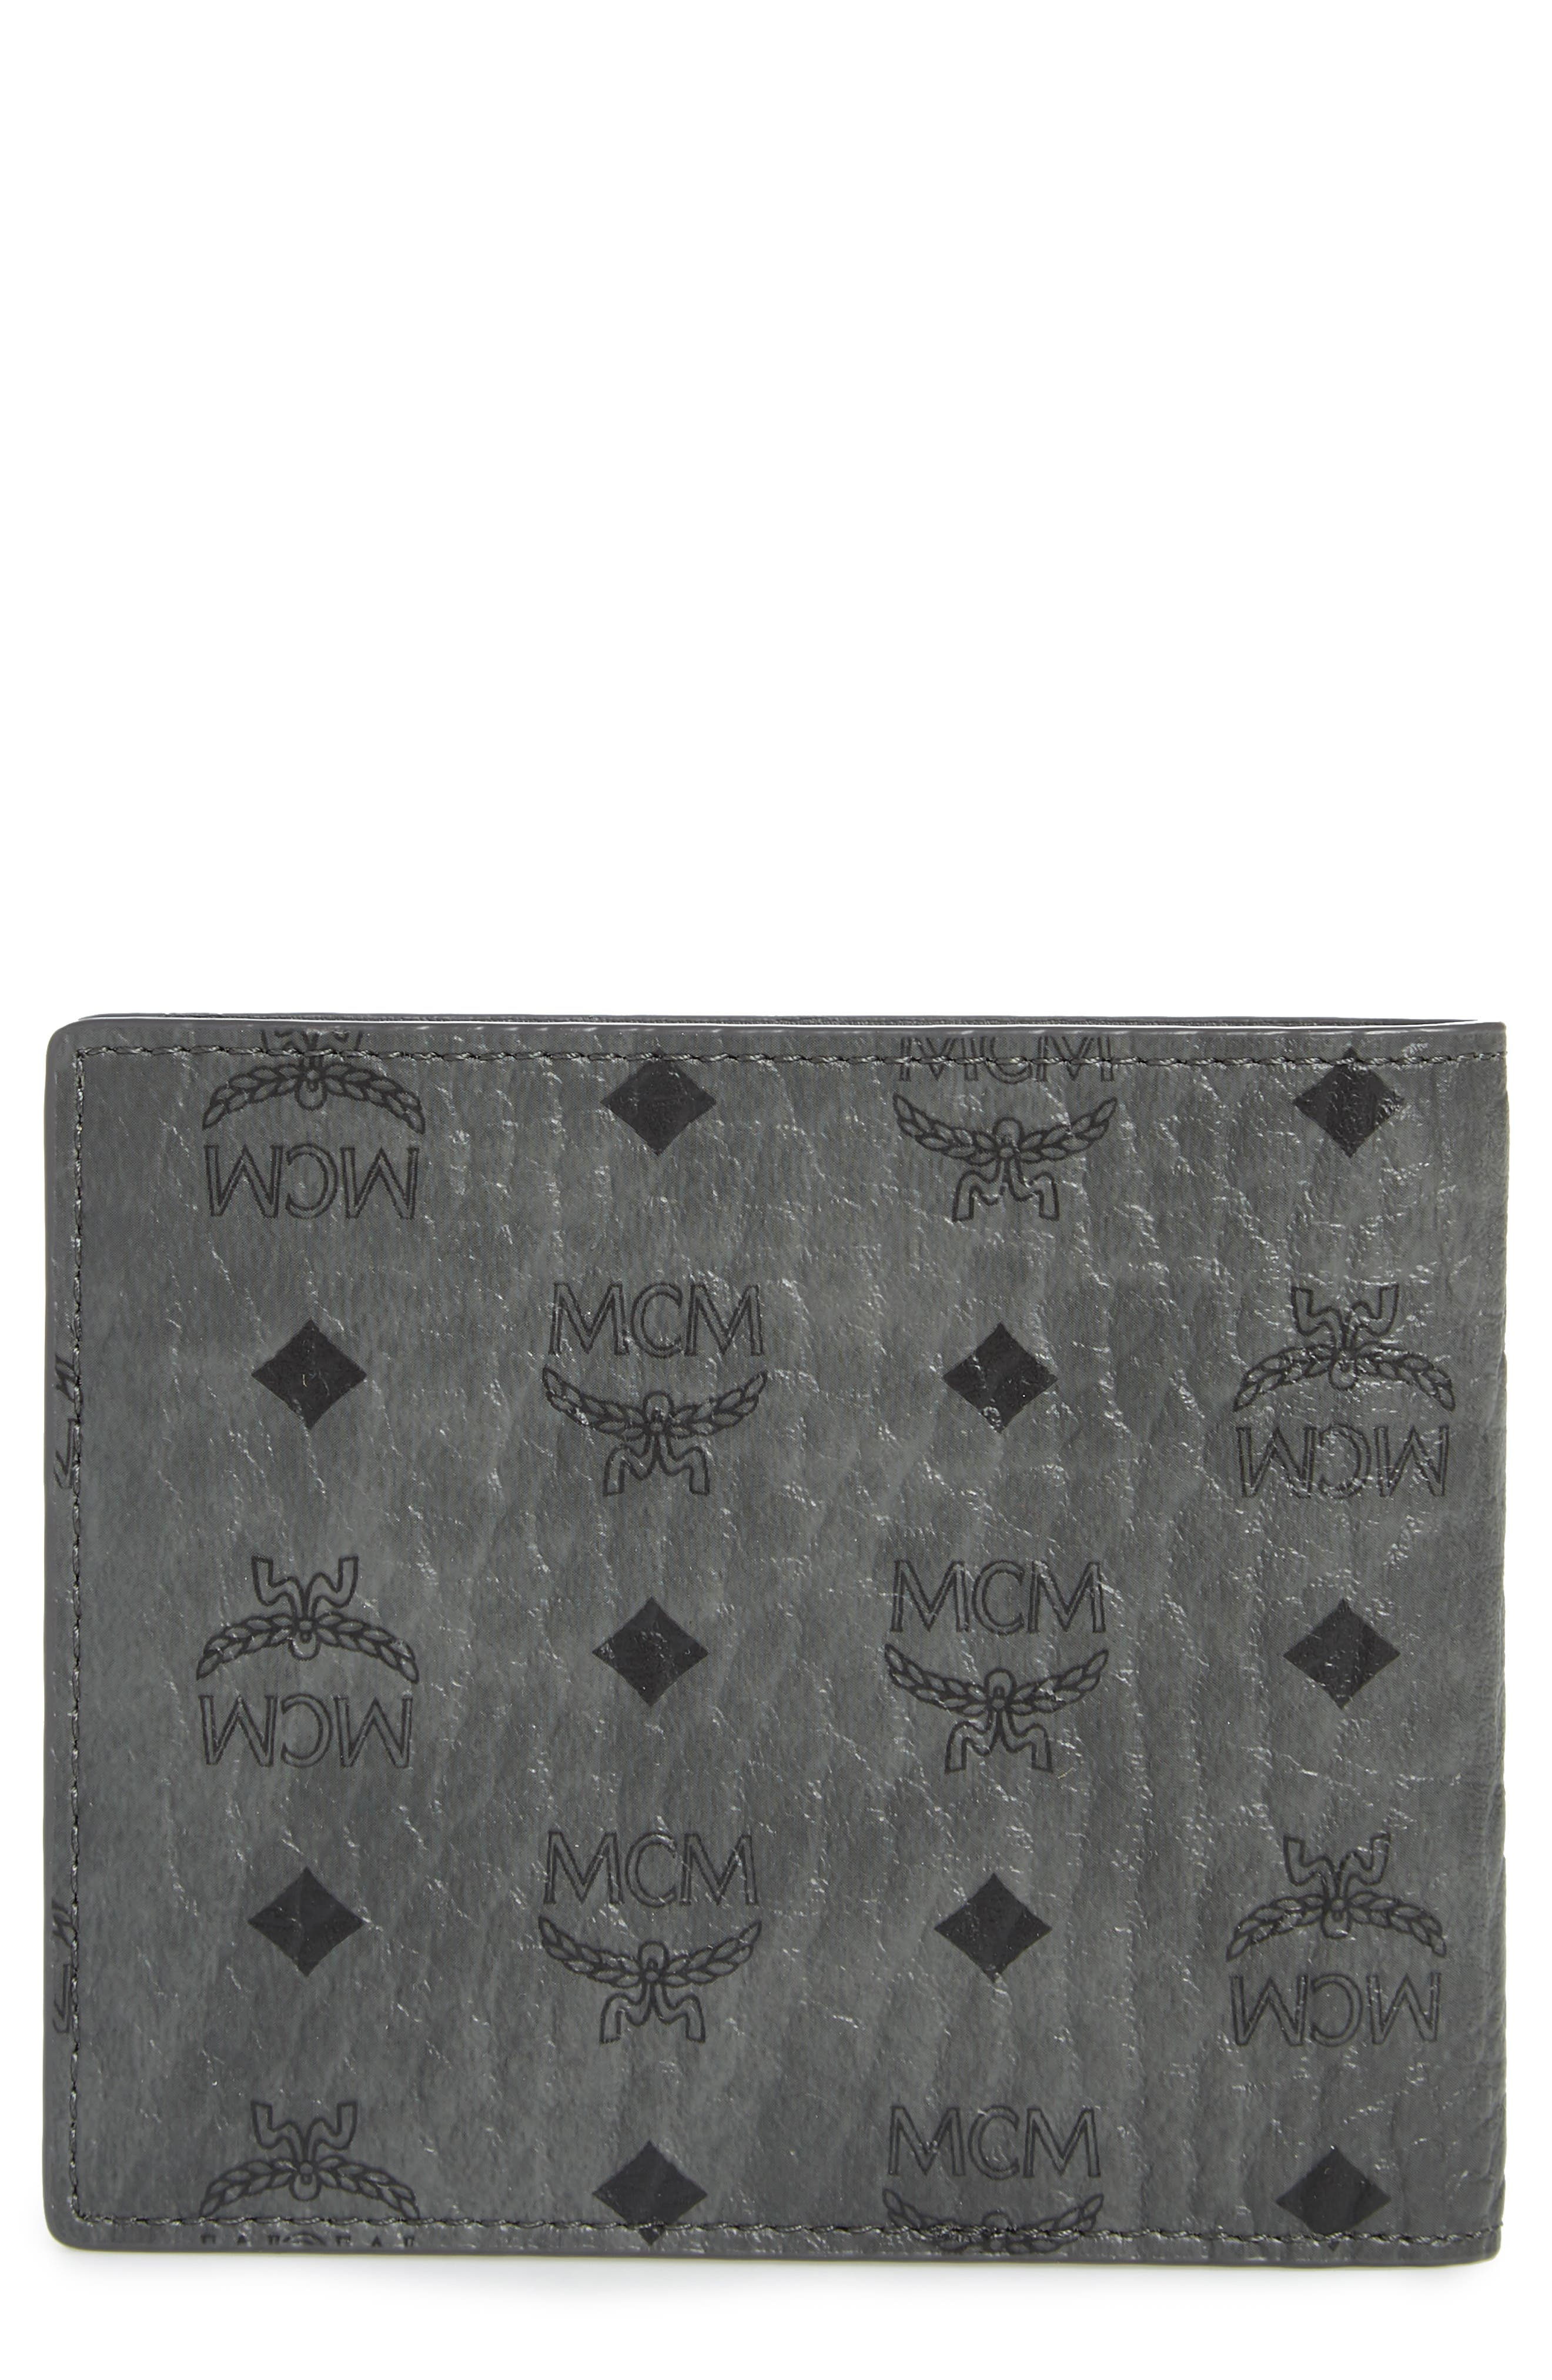 Logo Coated Canvas & Leather Wallet,                             Main thumbnail 1, color,                             PHANTOM GREY